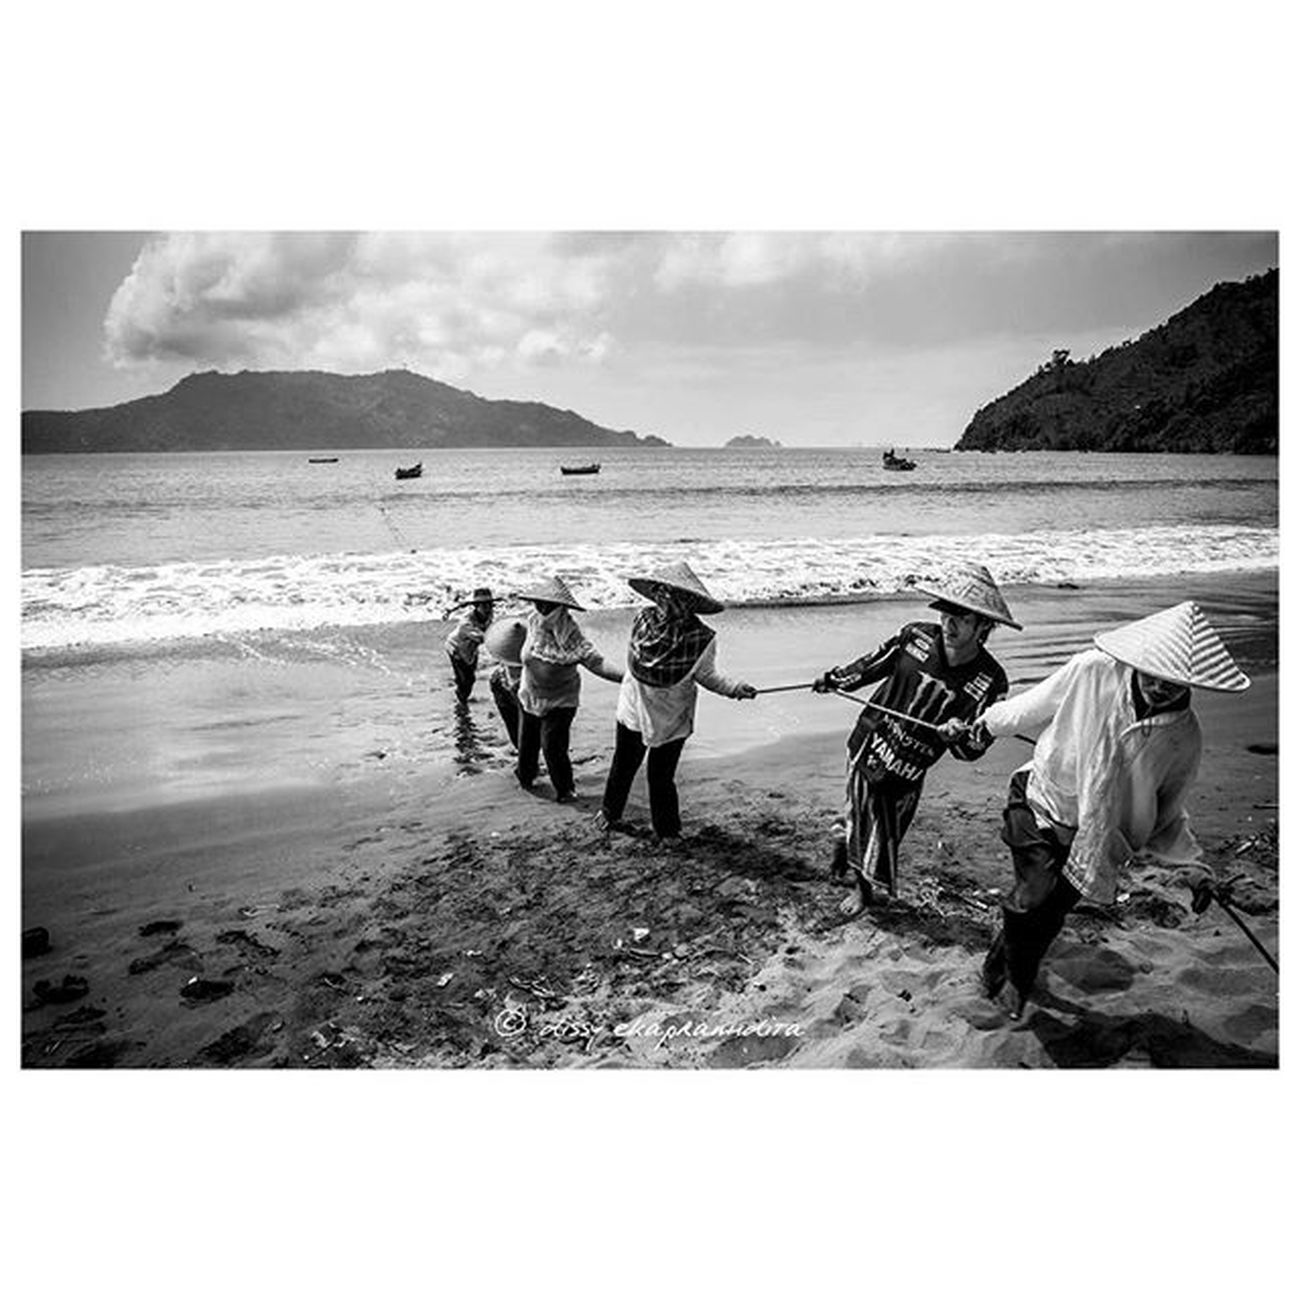 Holopis kuntul baris Trenggalek Pantaicengkrong Eastjava Teamwork Fisher Beach BeautifulIndonesia INDONESIA 1000kata Blackandwhite Asiangeographic Nationalgeographic Instalike Instagram Instagood Instadaily Photooftheday